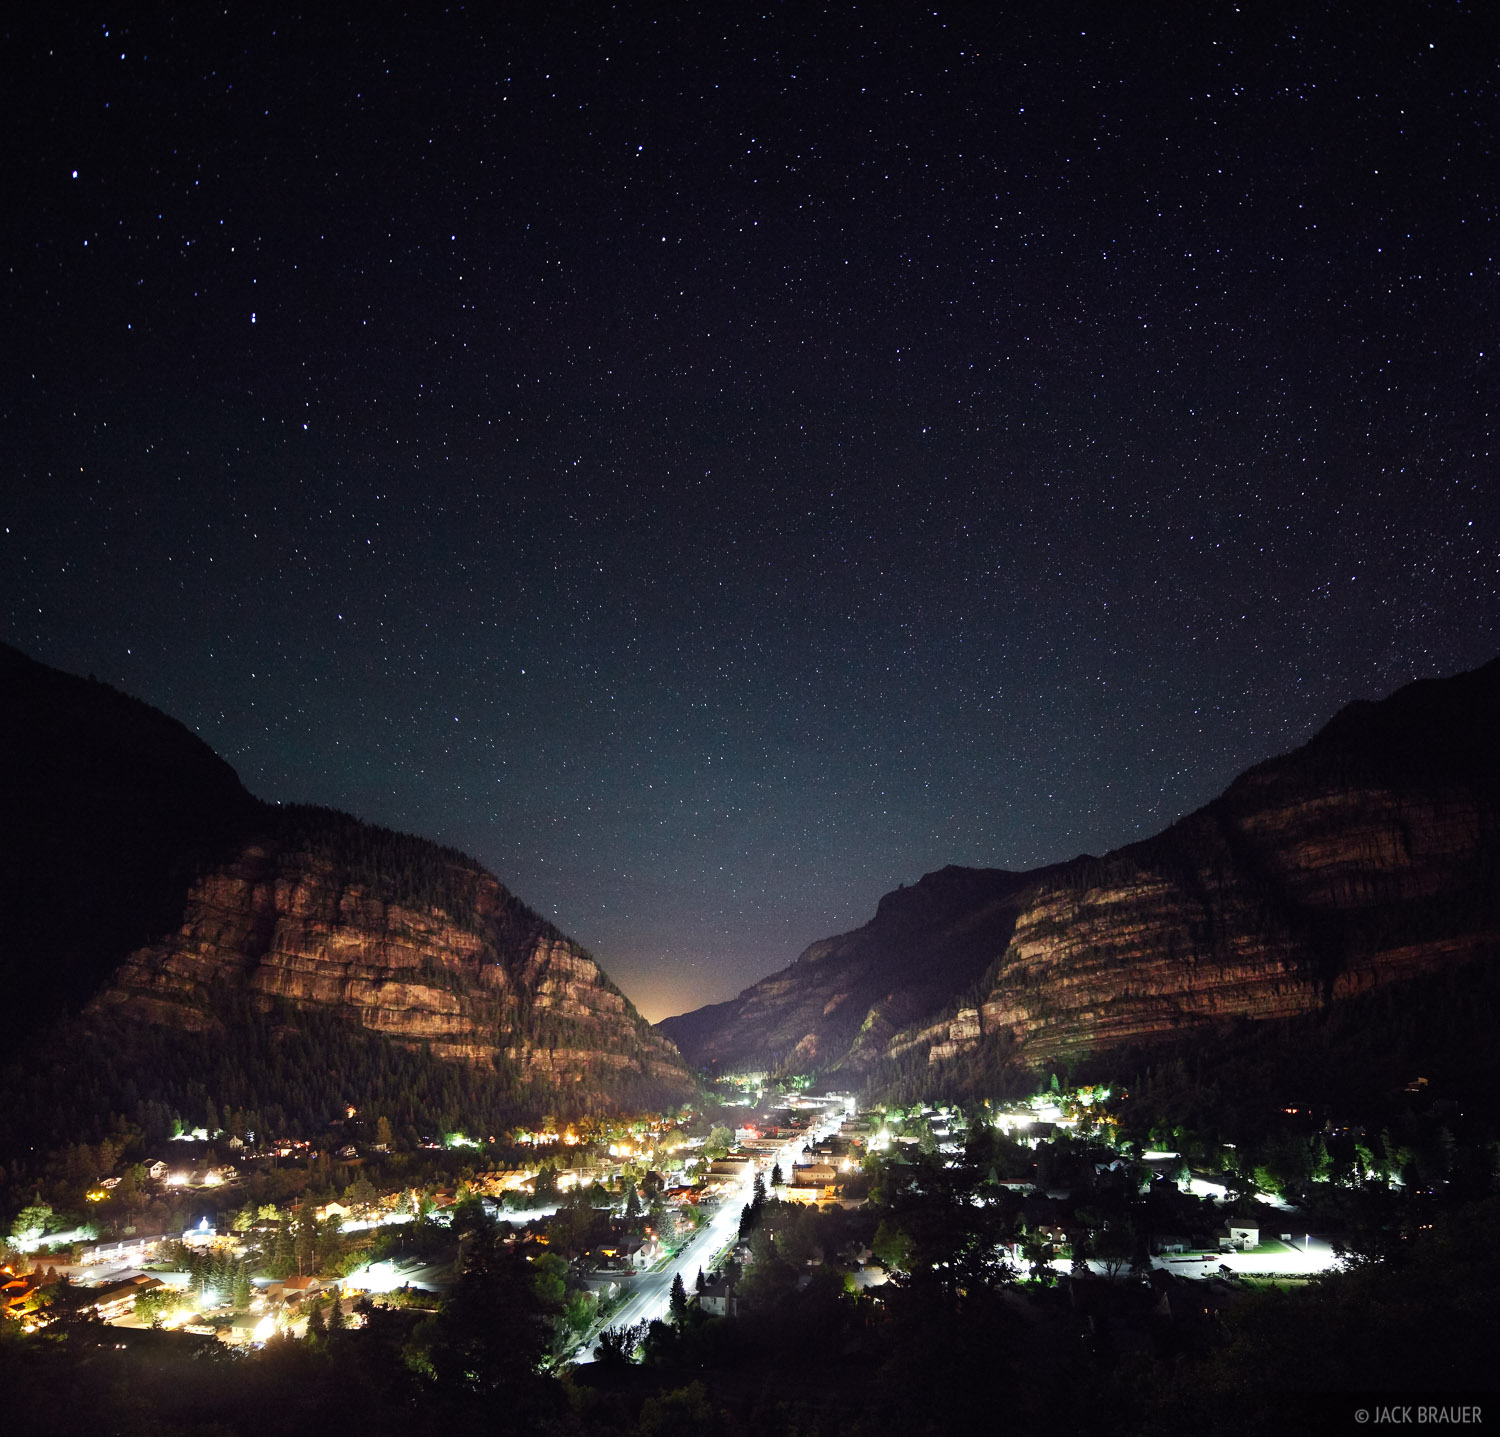 Stars, Ouray, Colorado, night, town, June, photo